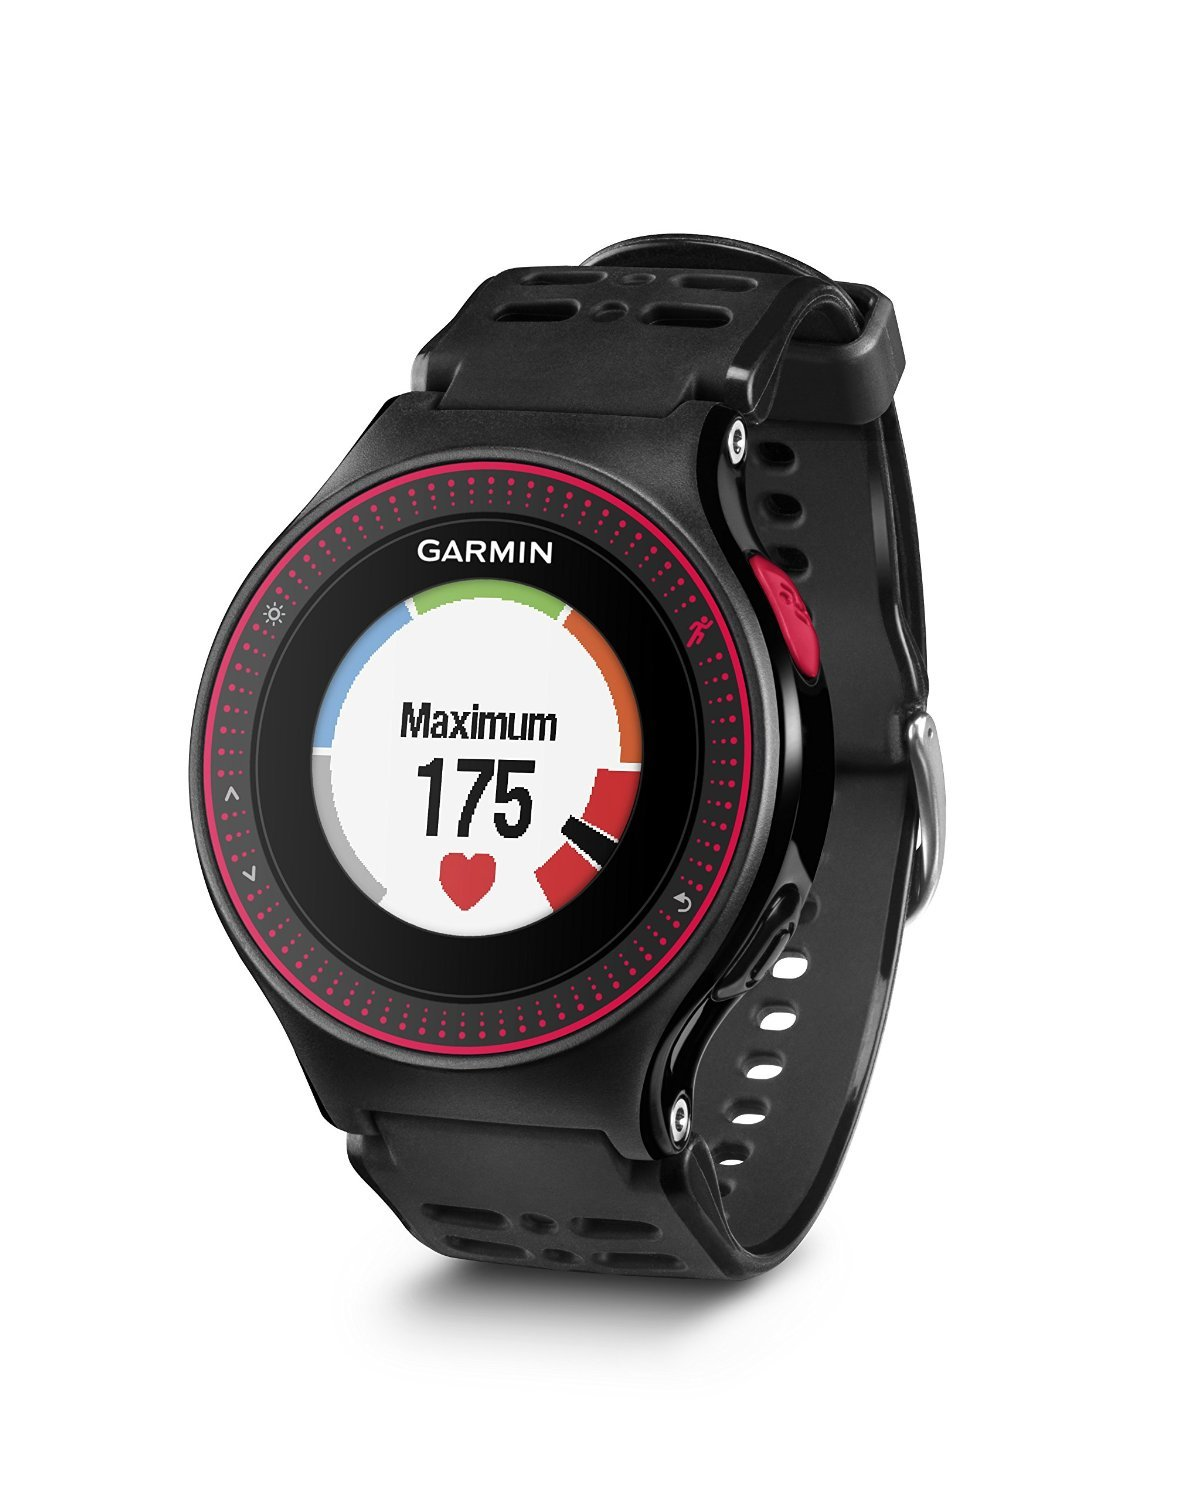 Garmin Forerunner 225 in full view